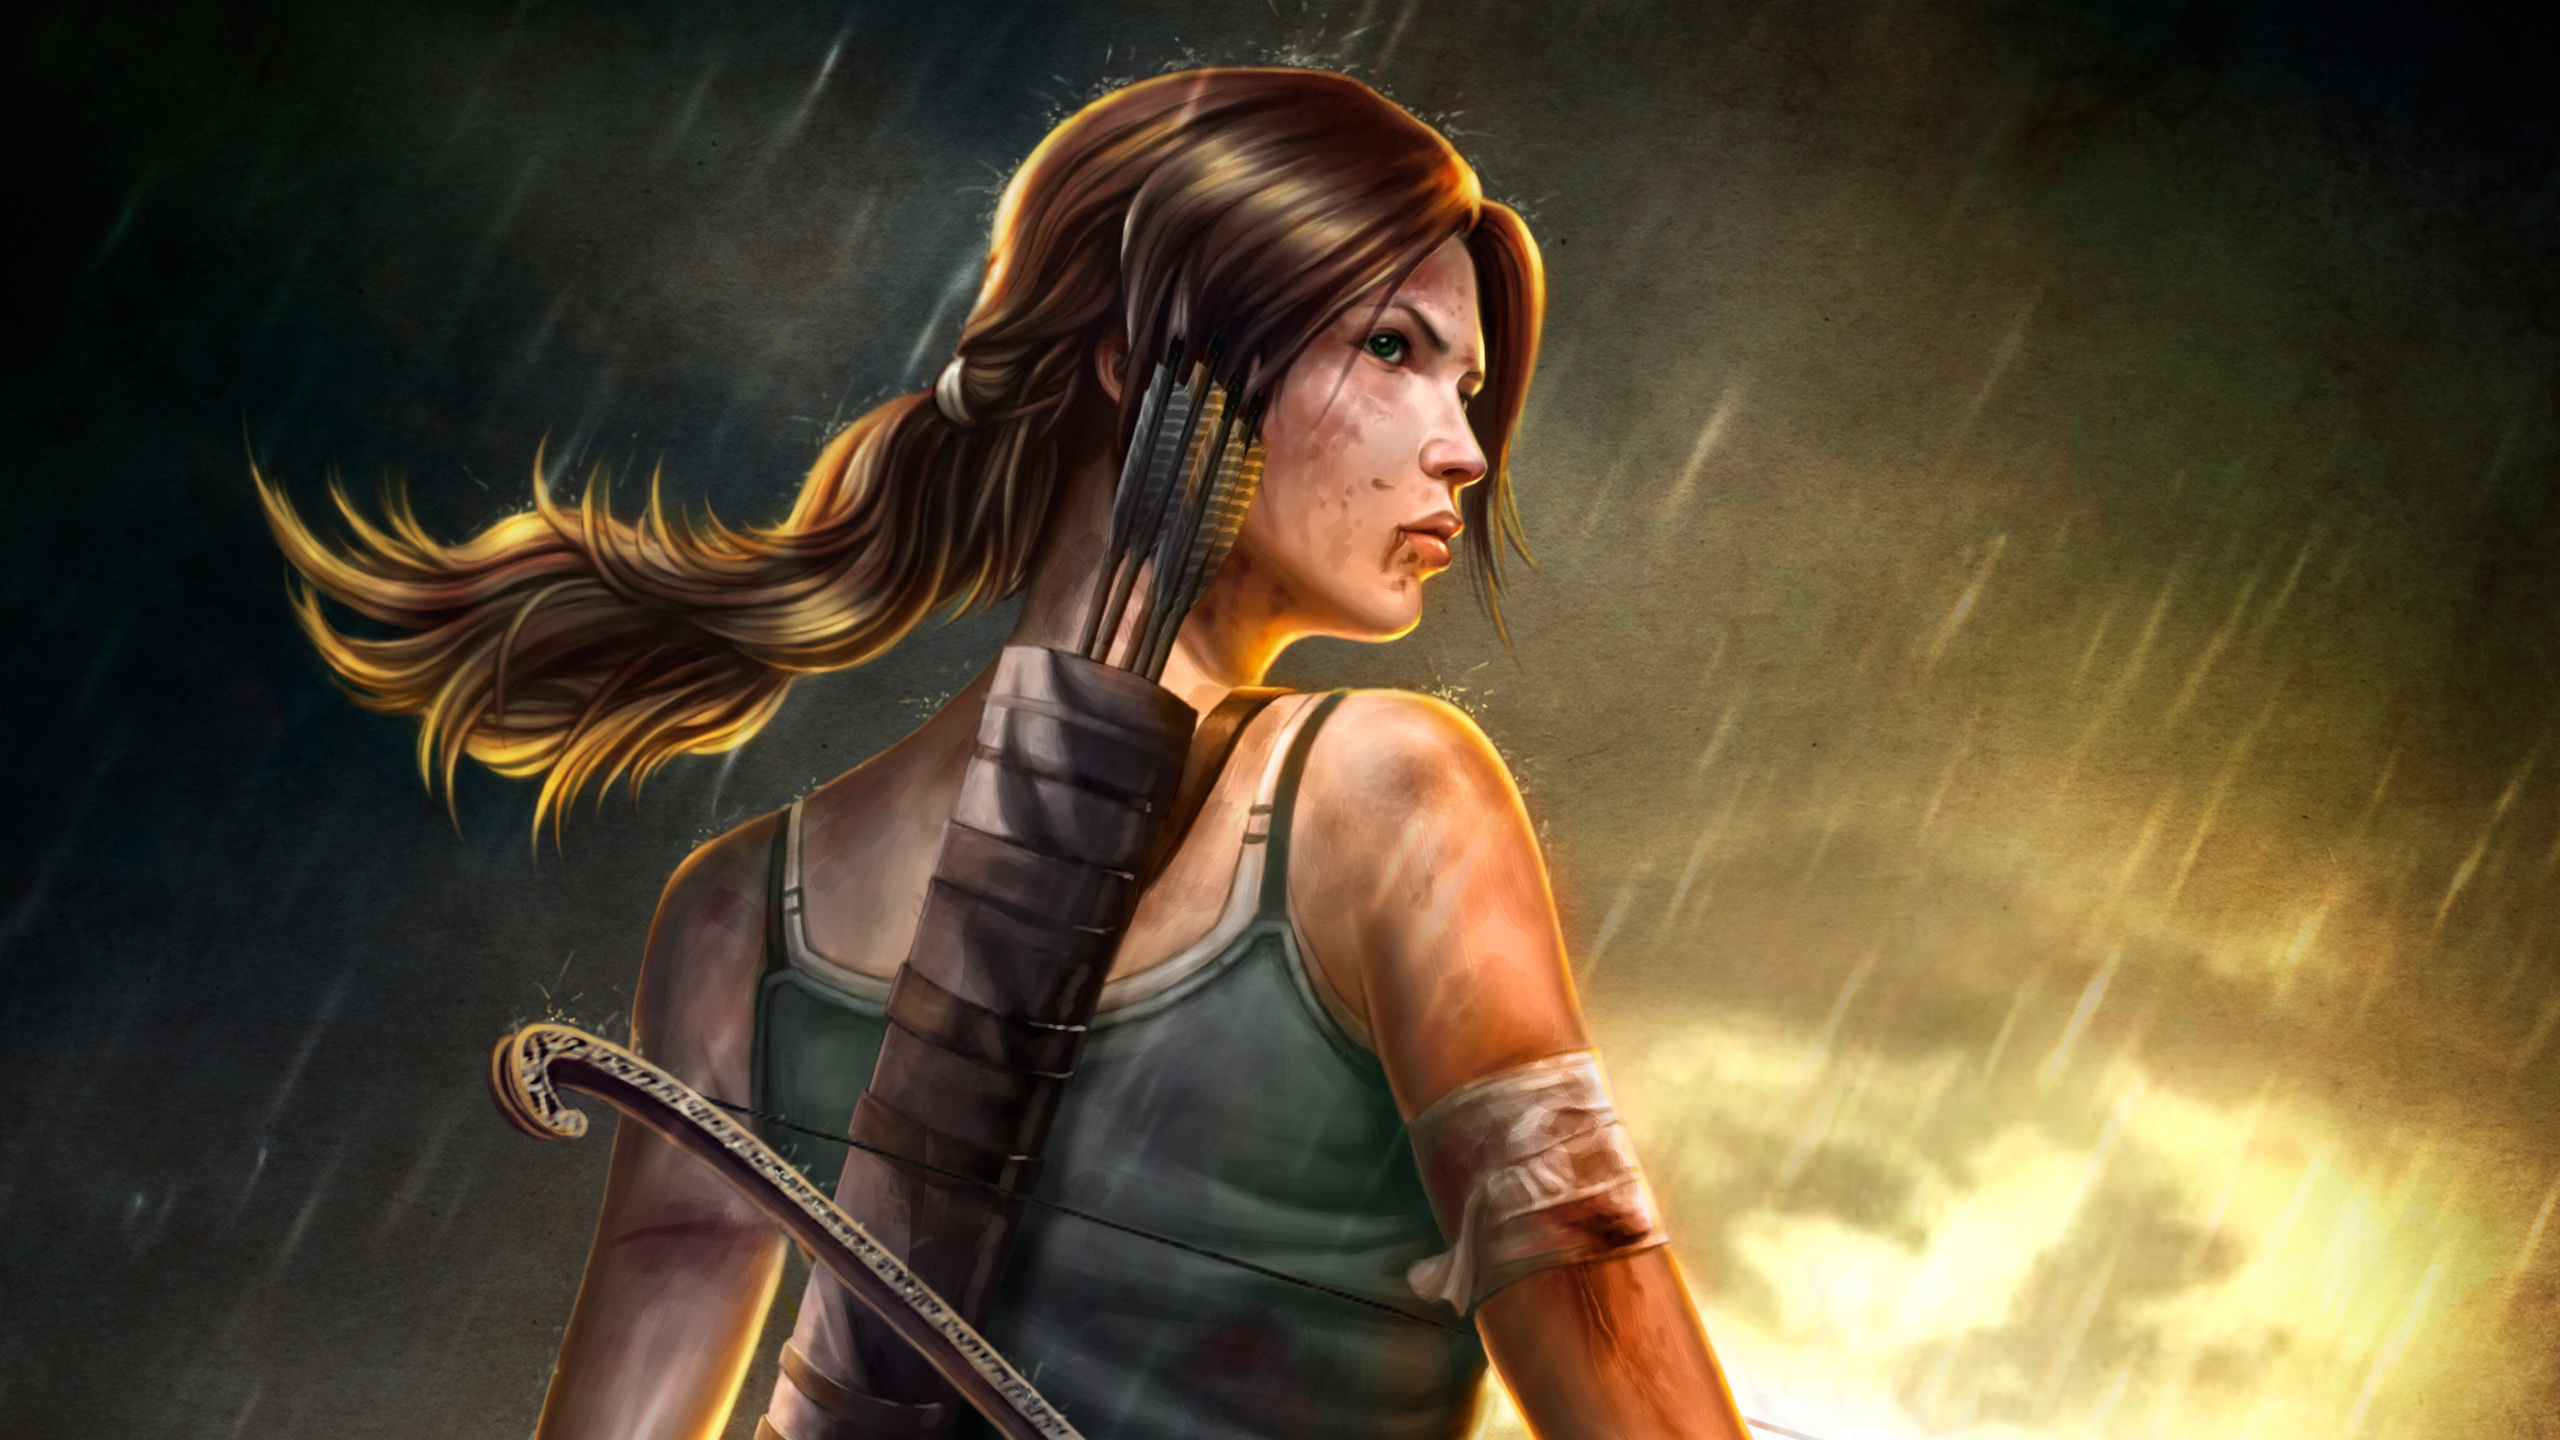 lara-croft-tomb-raider-4k-artwork-z8.jpg